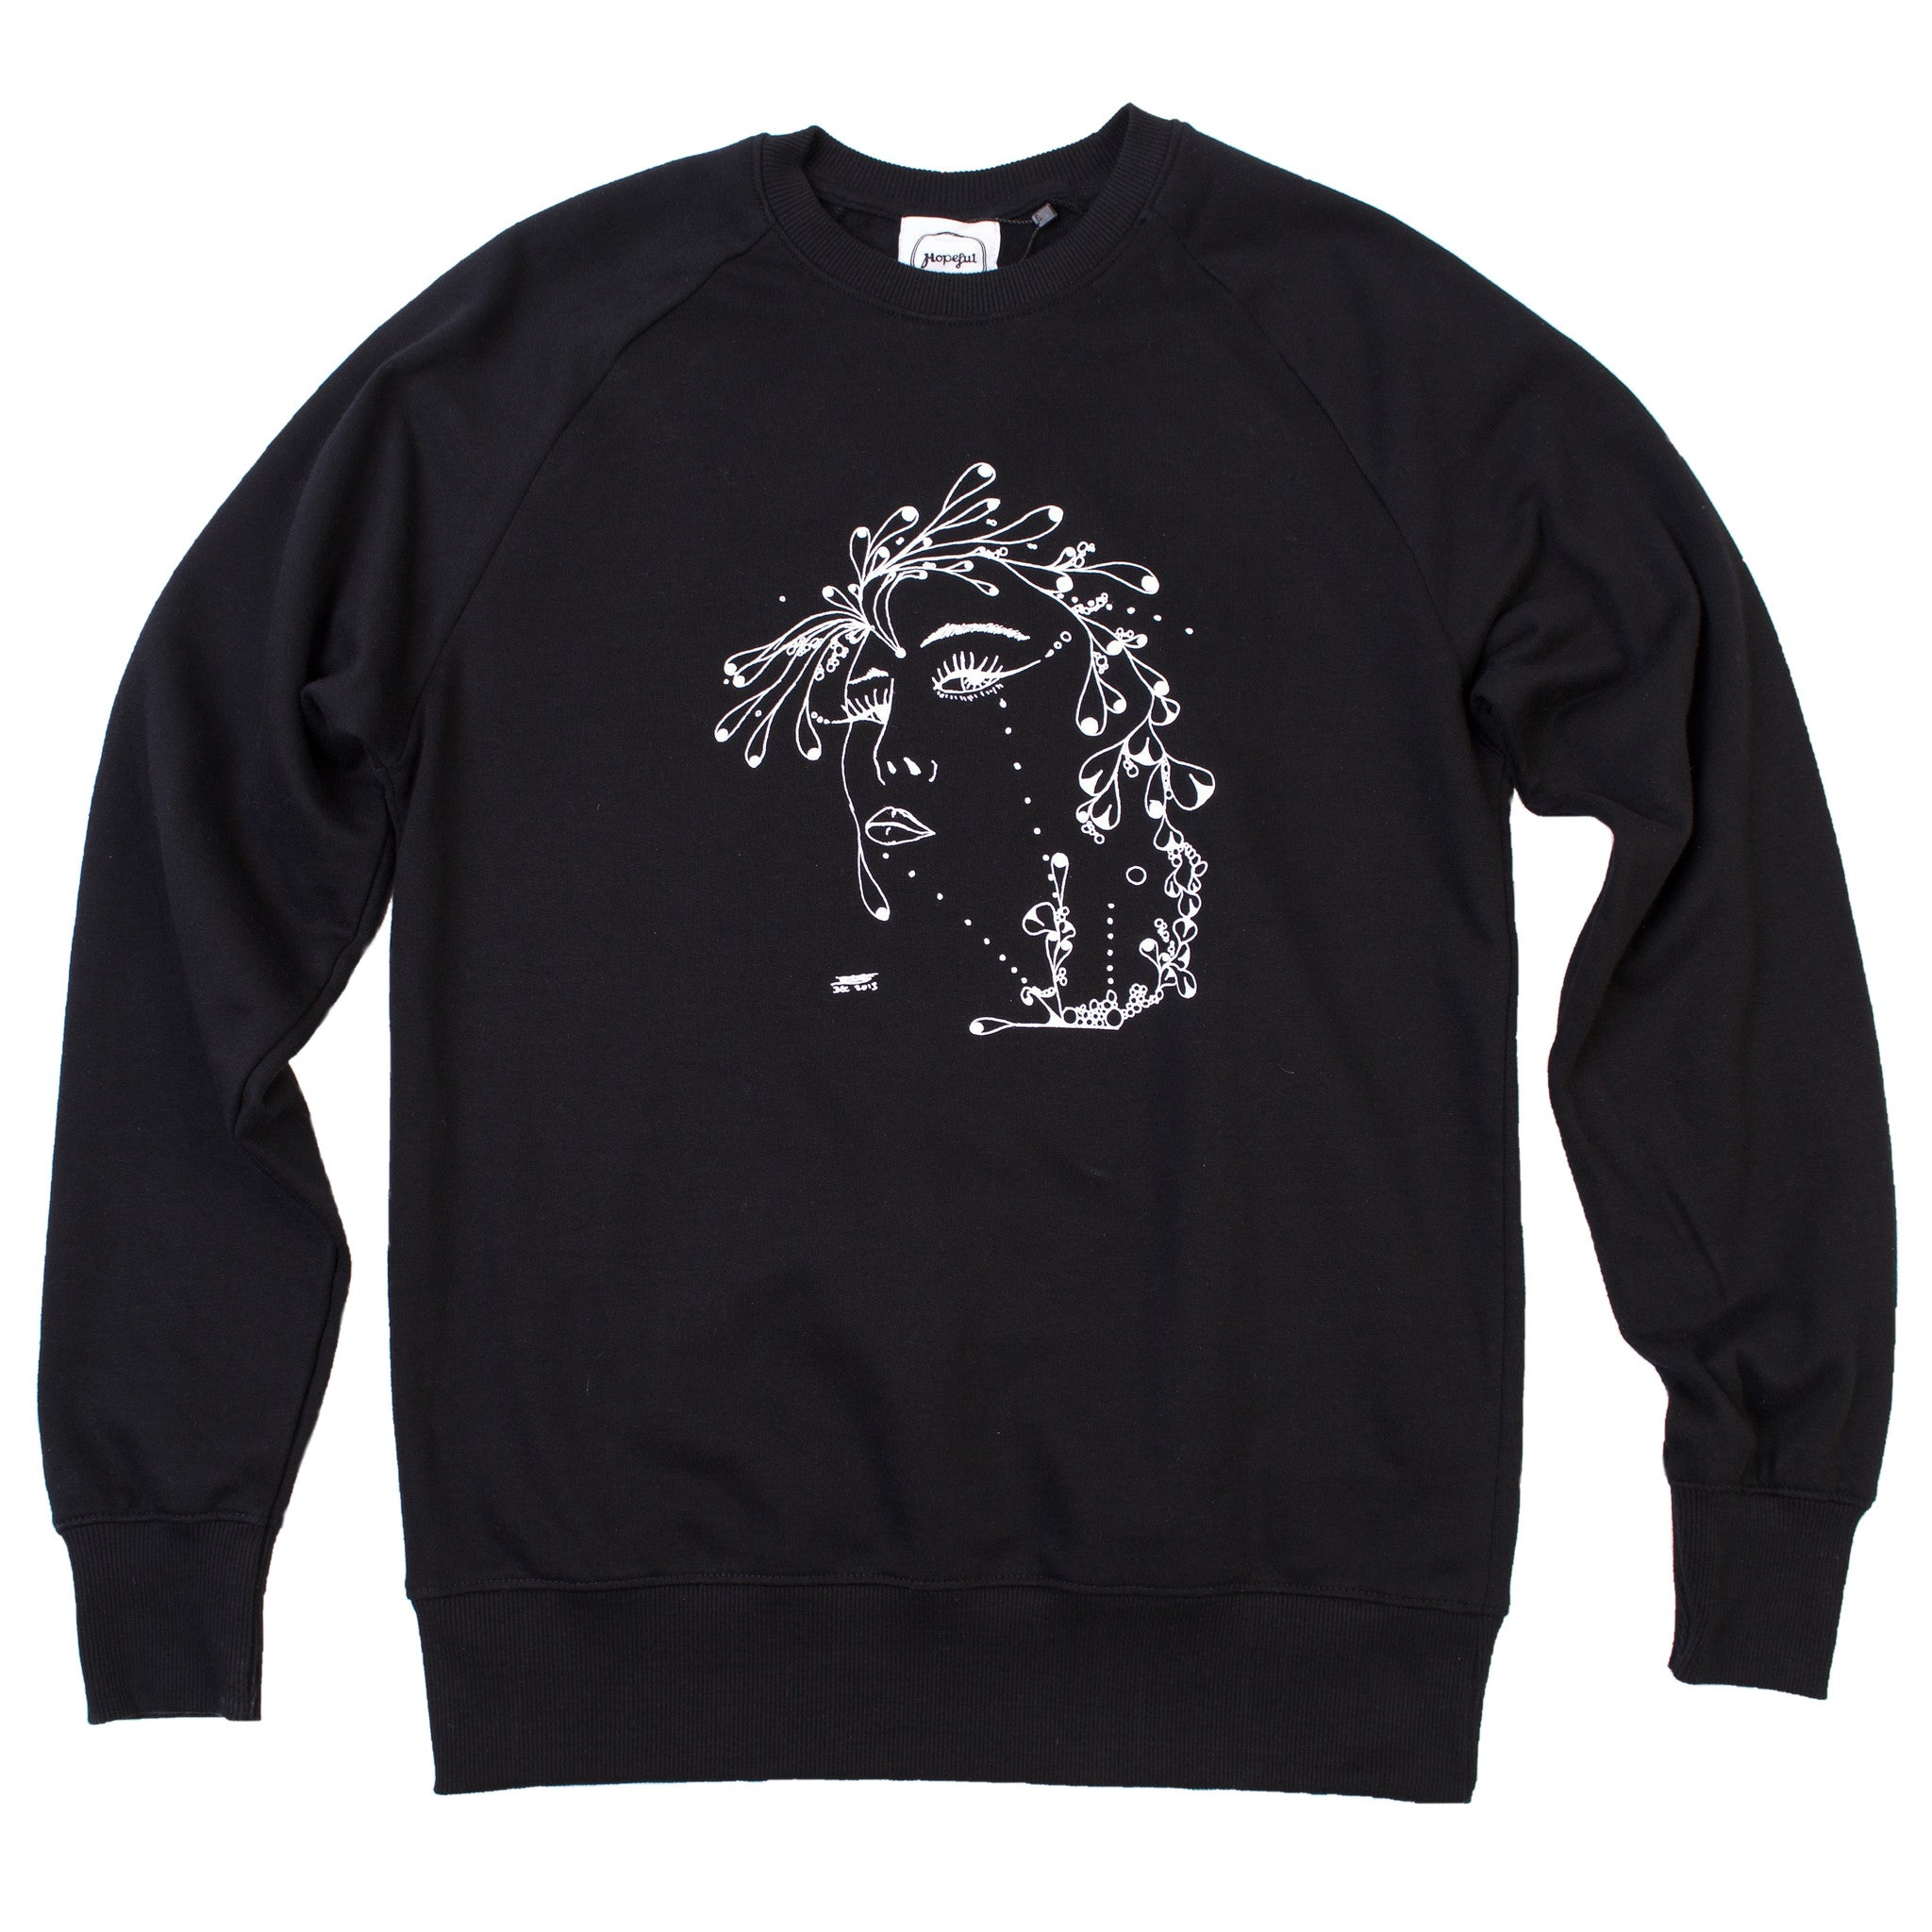 David's 2nd Girl Organic Sweatshirt